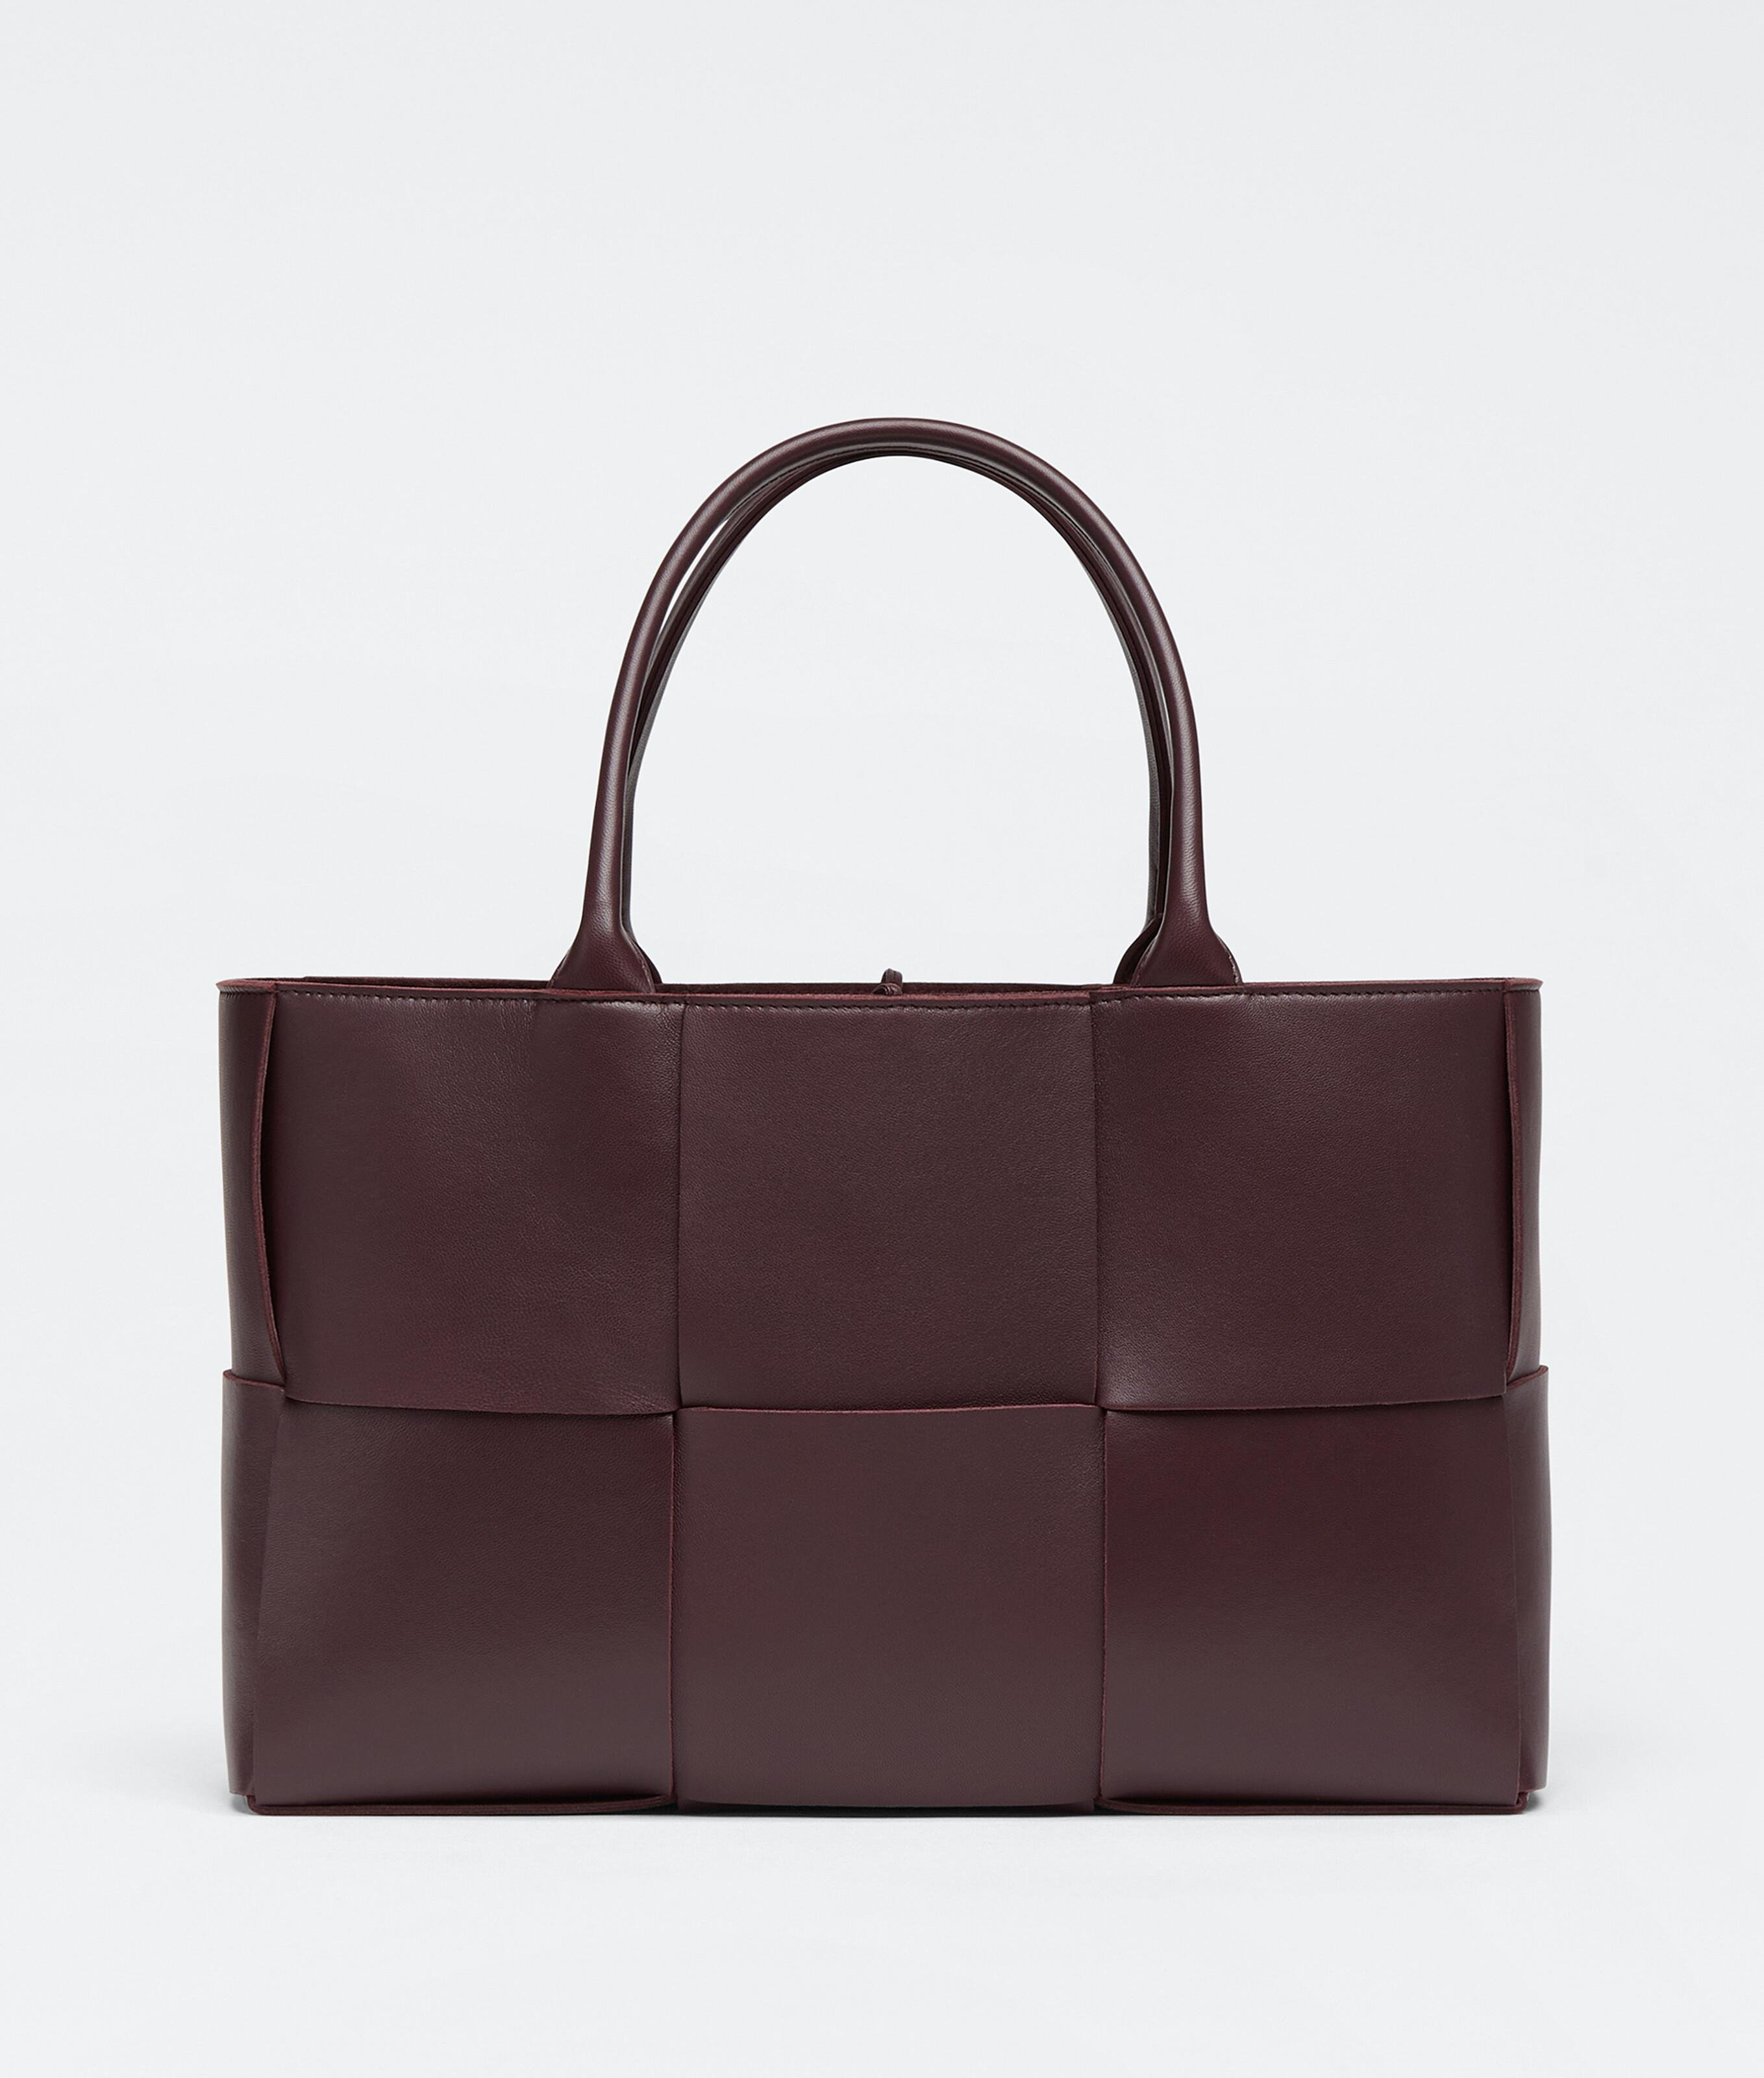 ARCO TOTE 0